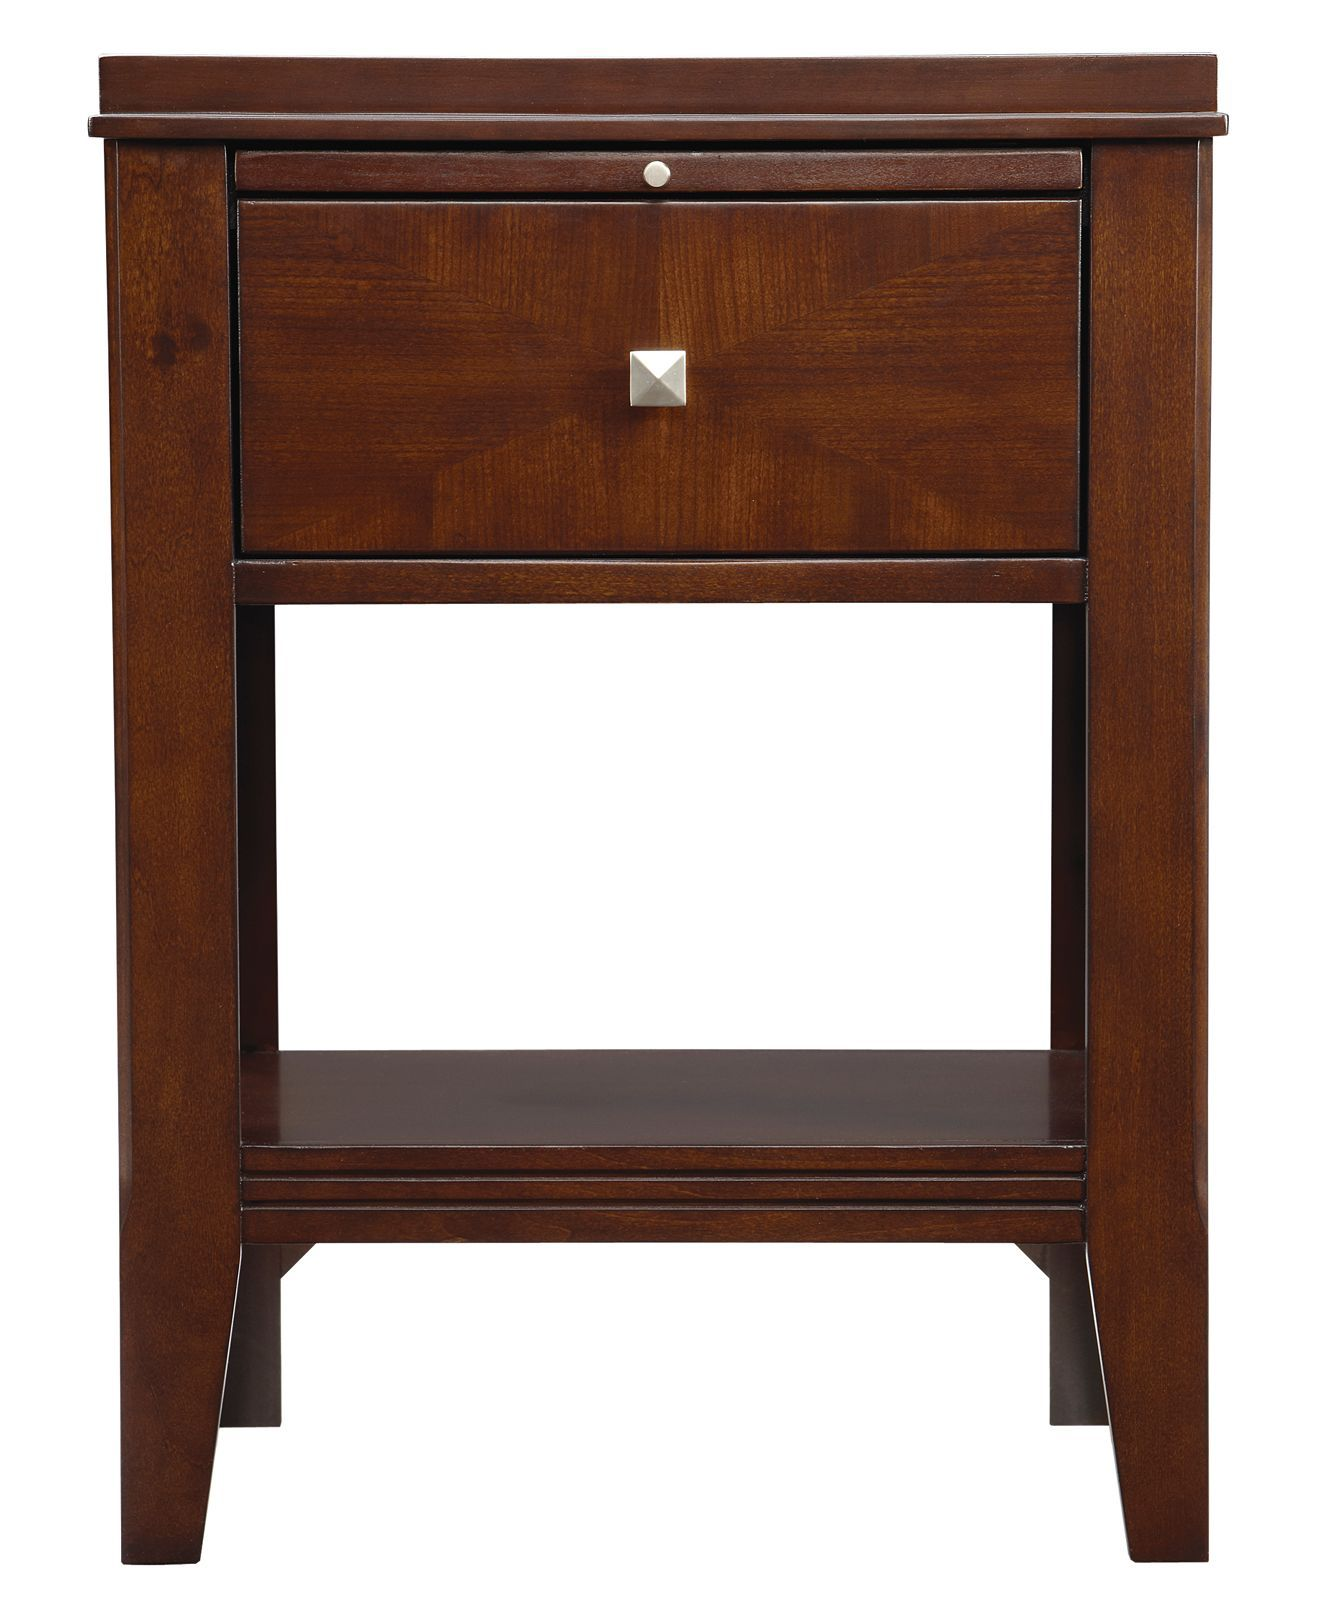 has drawer, tray, and shelf. On sale for 199; cherry